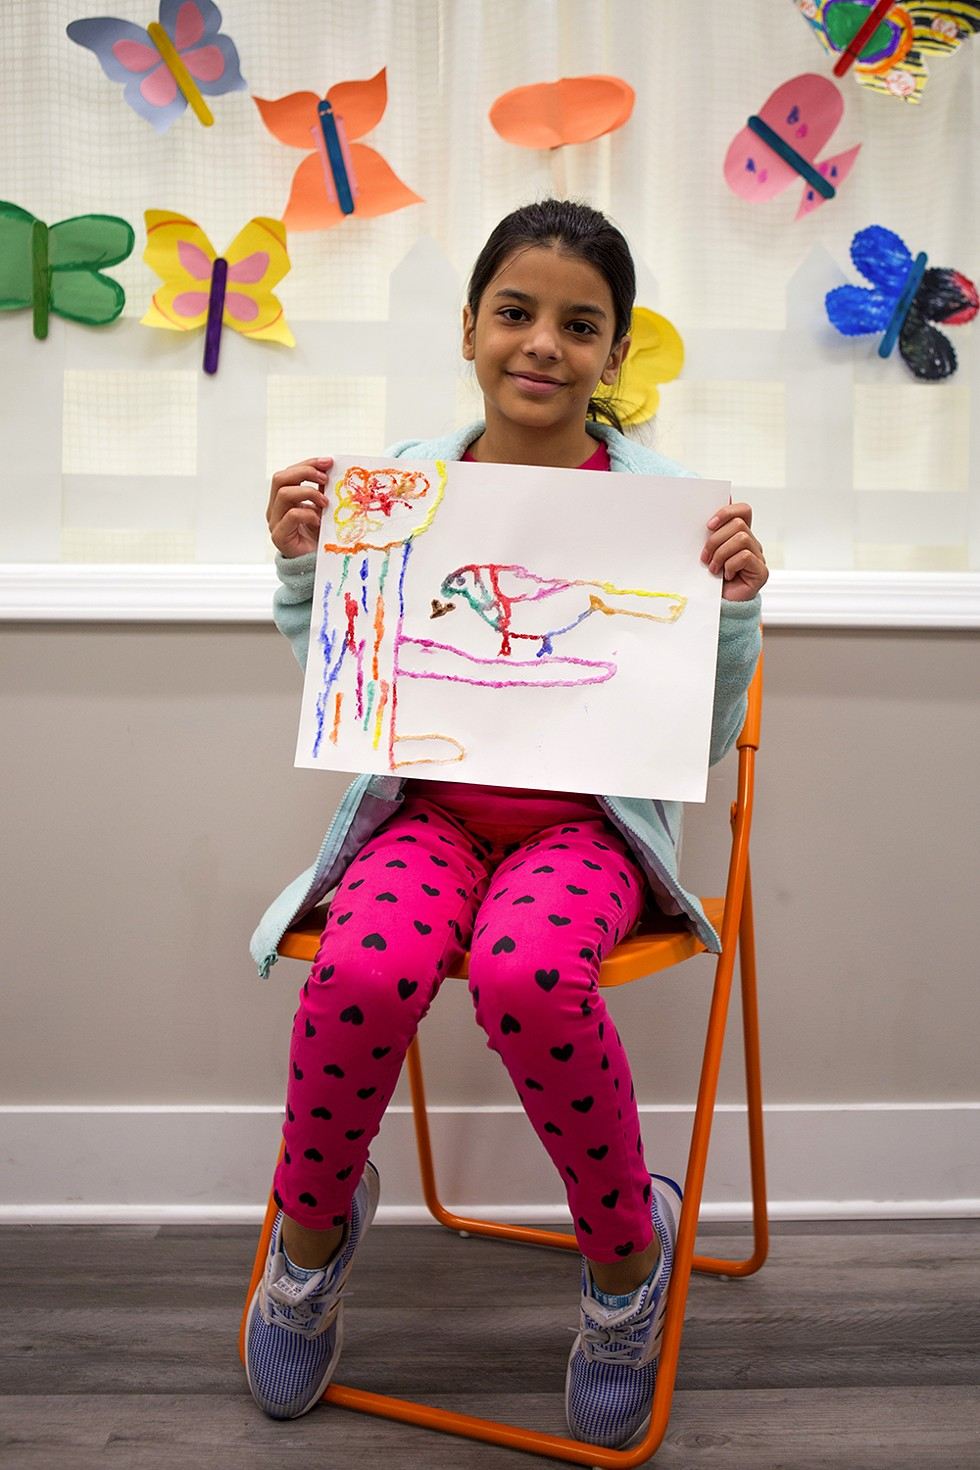 Nour, 9, presents a bird she drew using salt and watercolors. She and her family also moved to Chicago from Syria about three years ago. - FARAH SALEM FOR CHICAGO READER